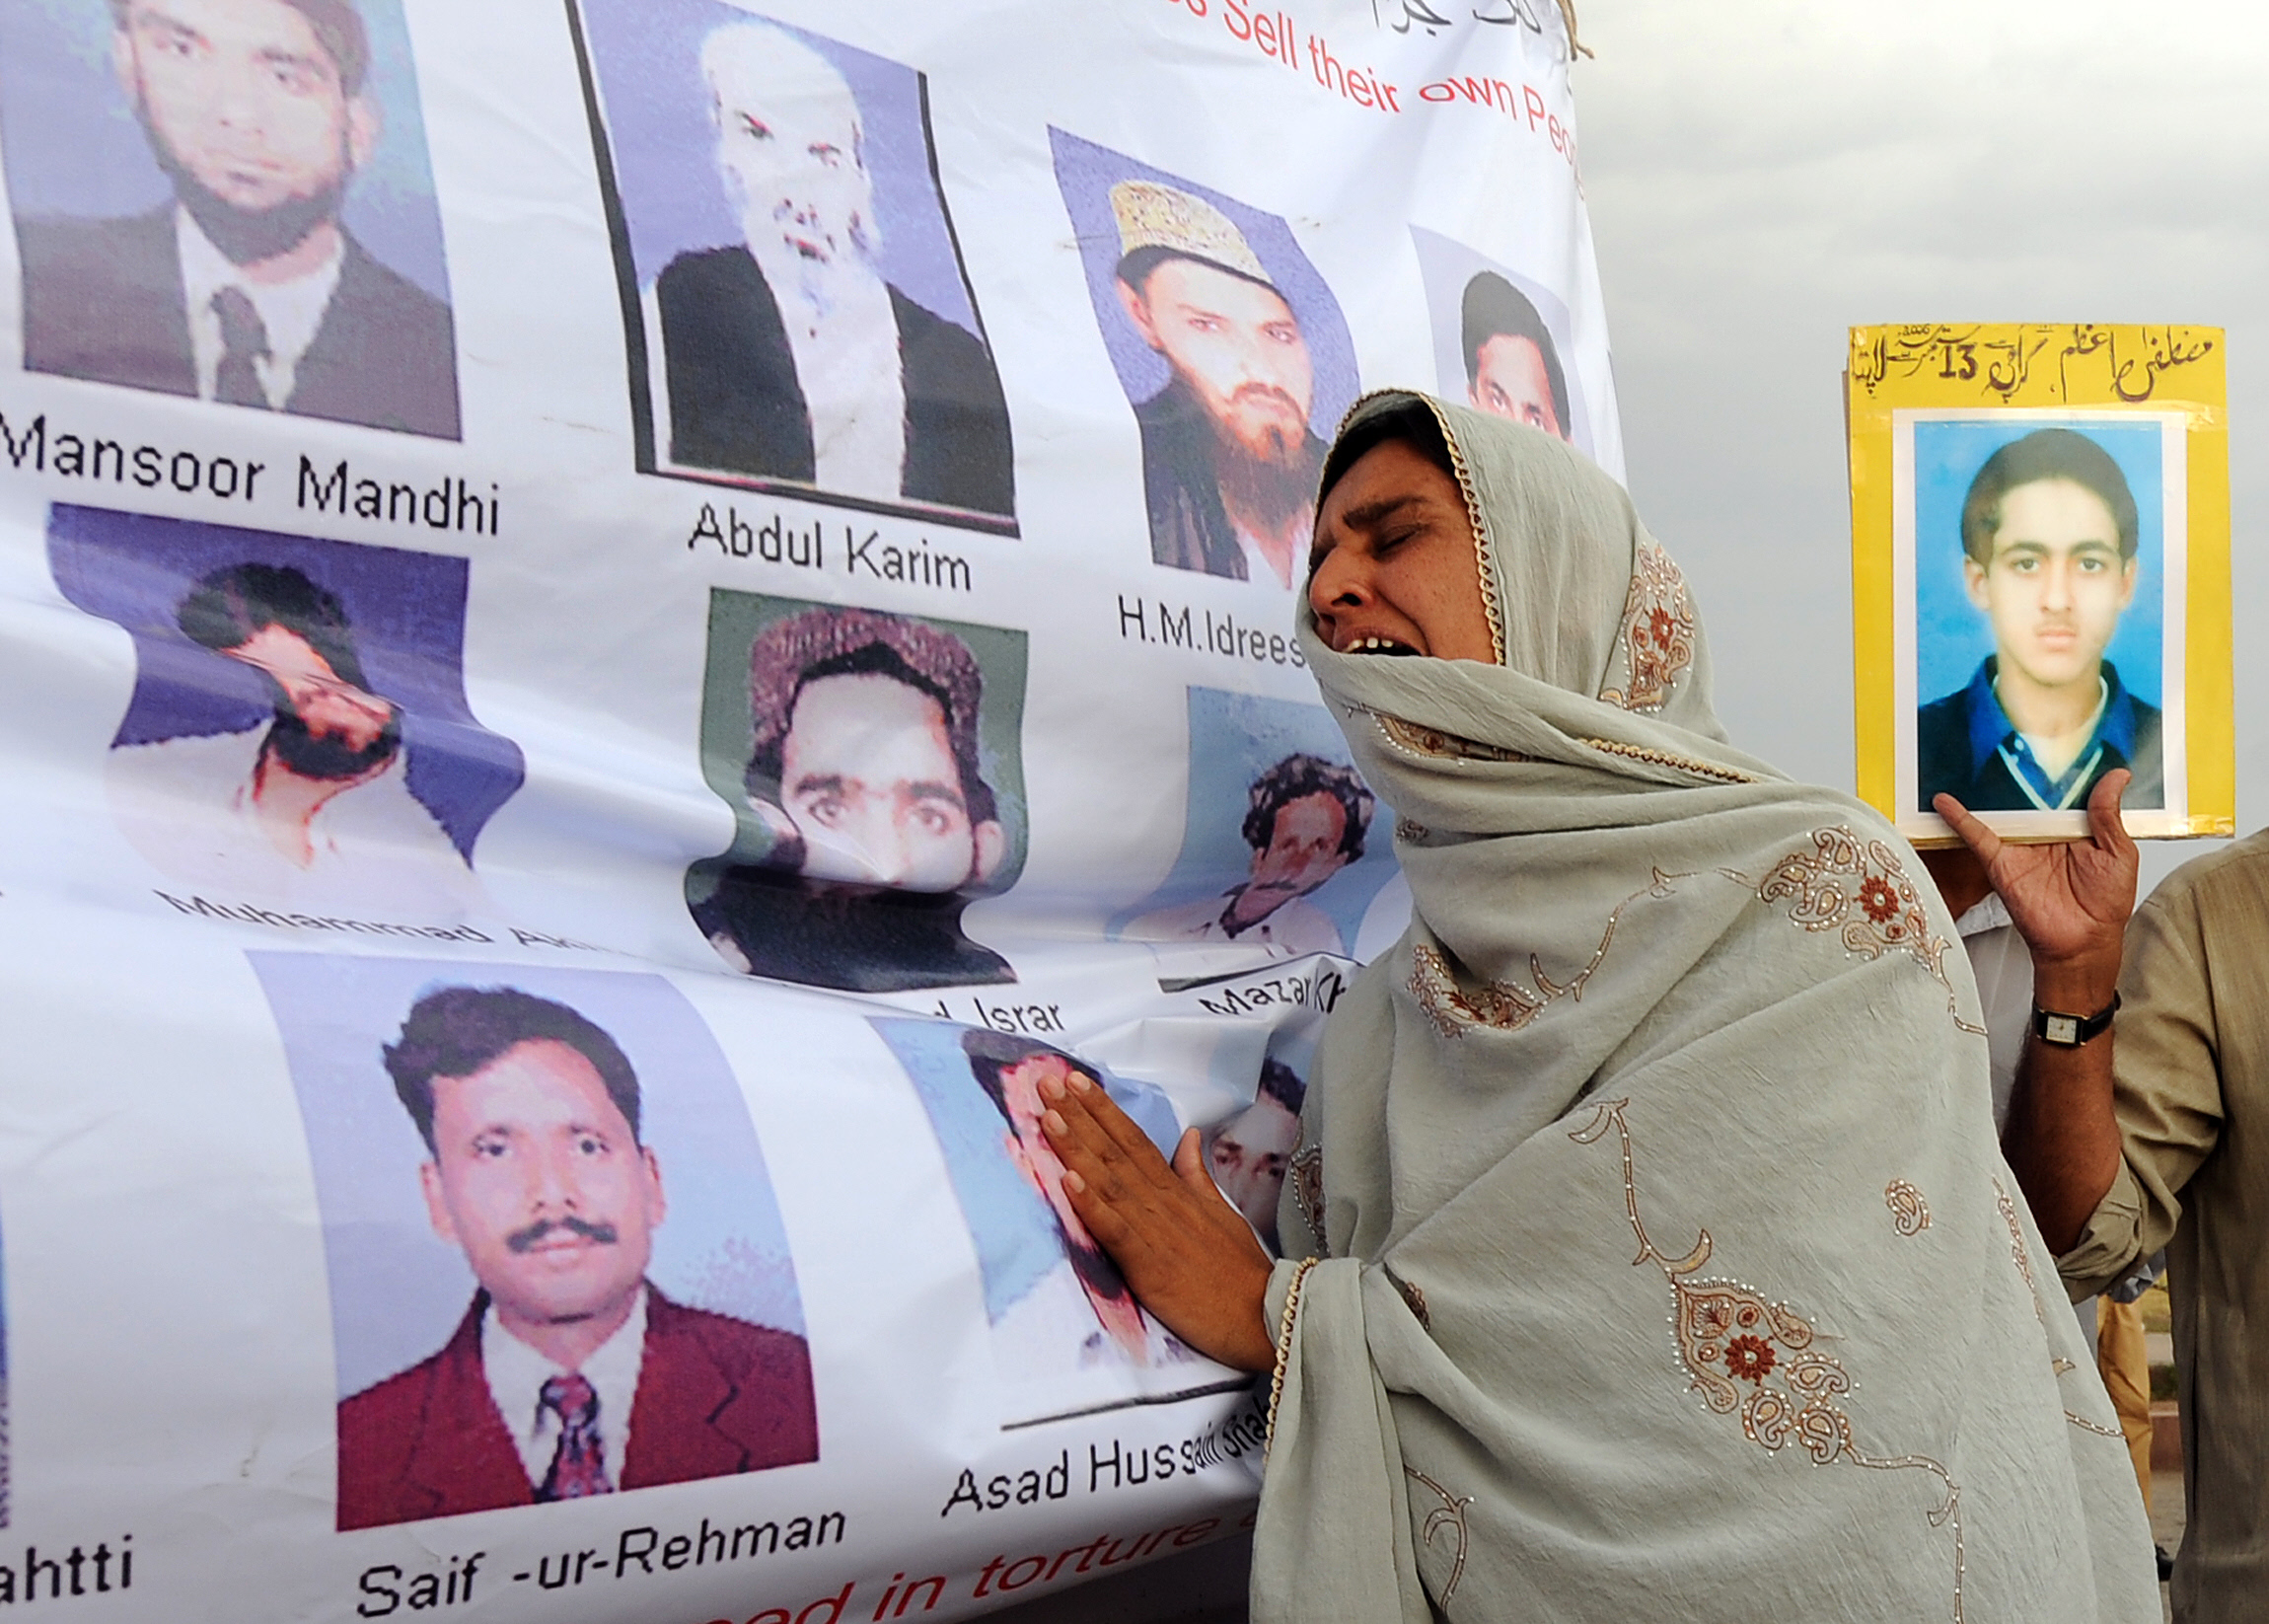 PAKISTAN-MISSING-PERSONS-DEMO